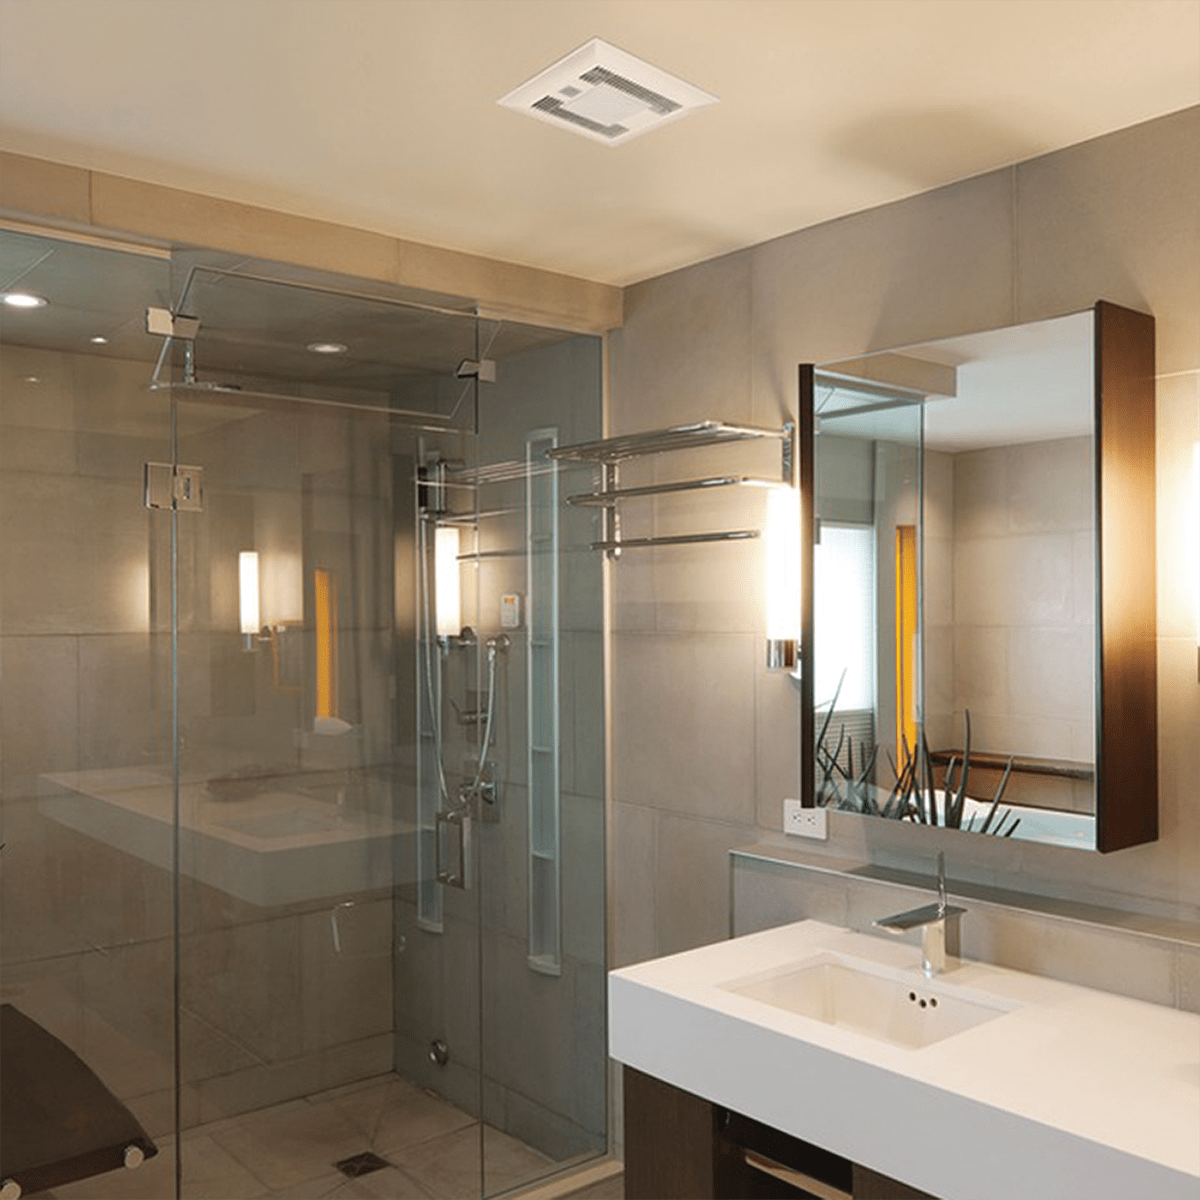 Introducing panasonic bathroom fans - Panasonic bathroom ventilation fans ...